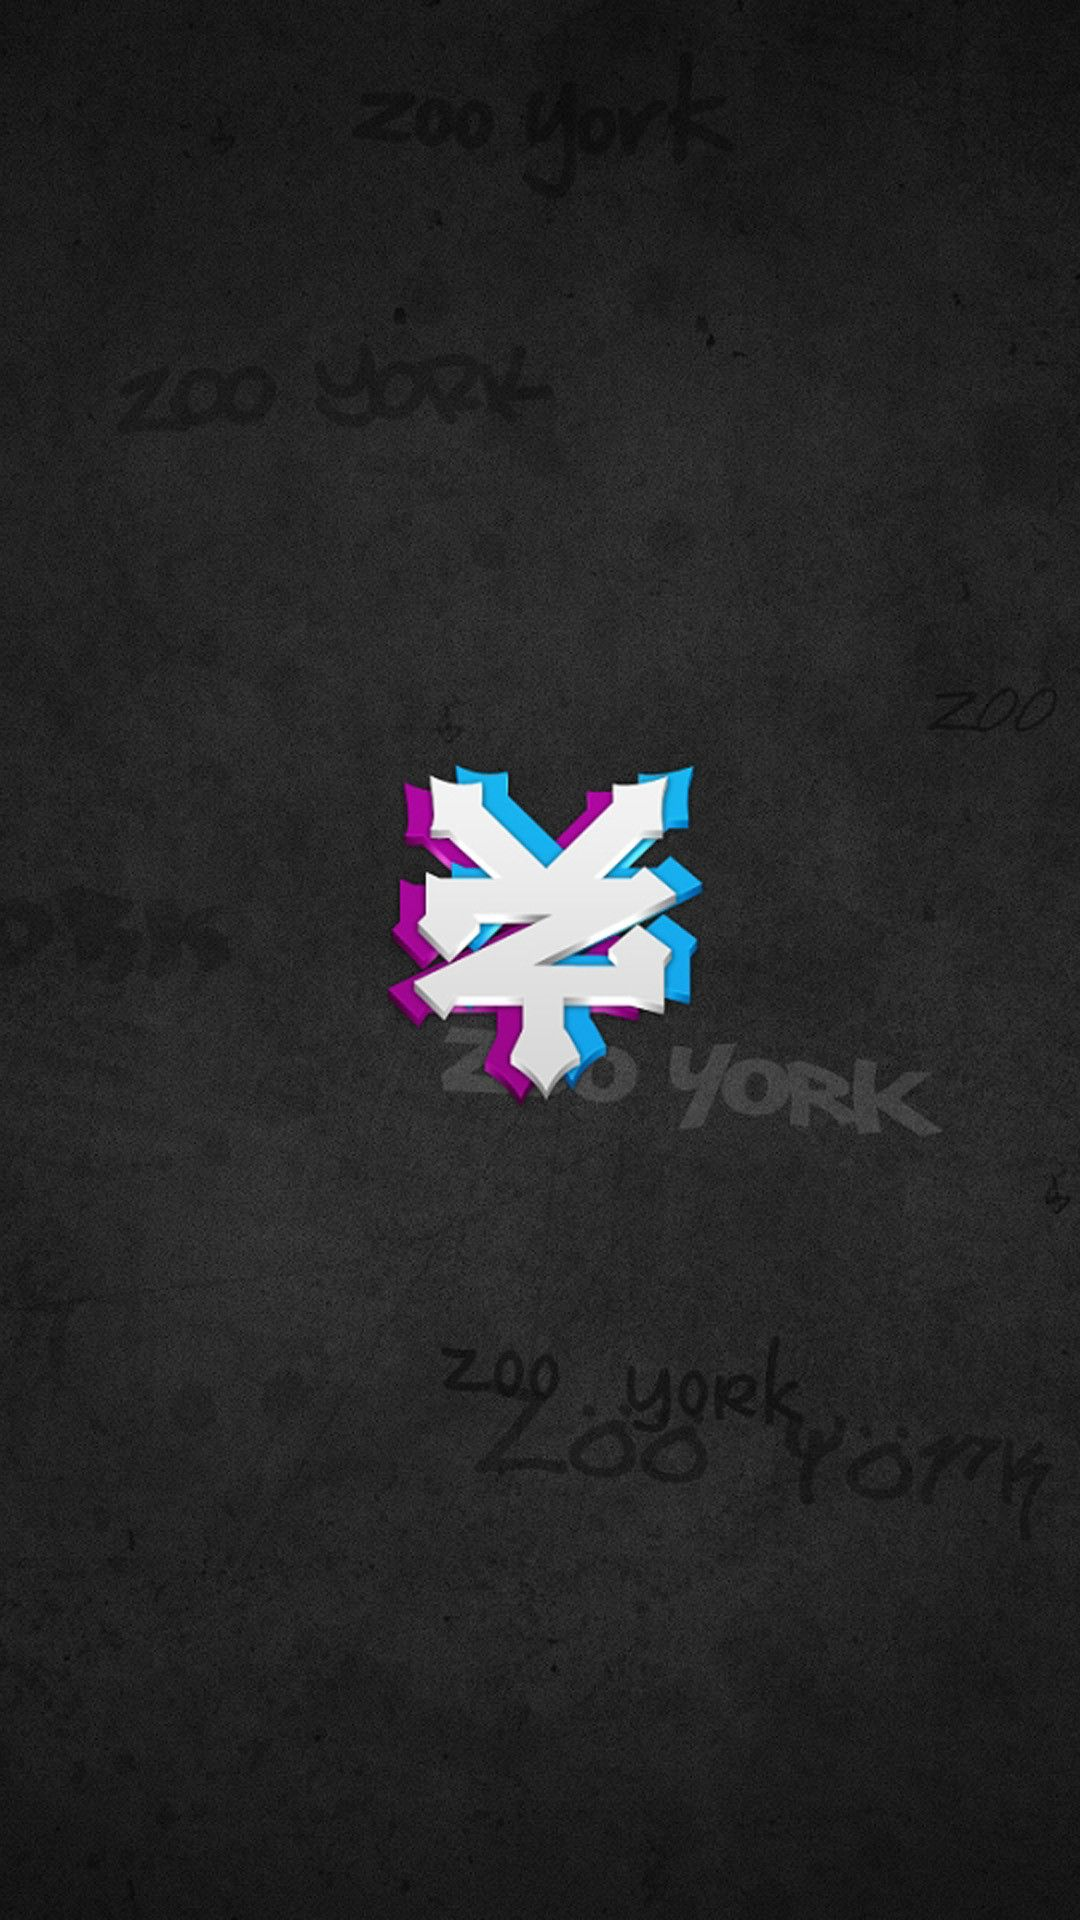 Epic Awesome Android Background Zoo york, Supreme iphone